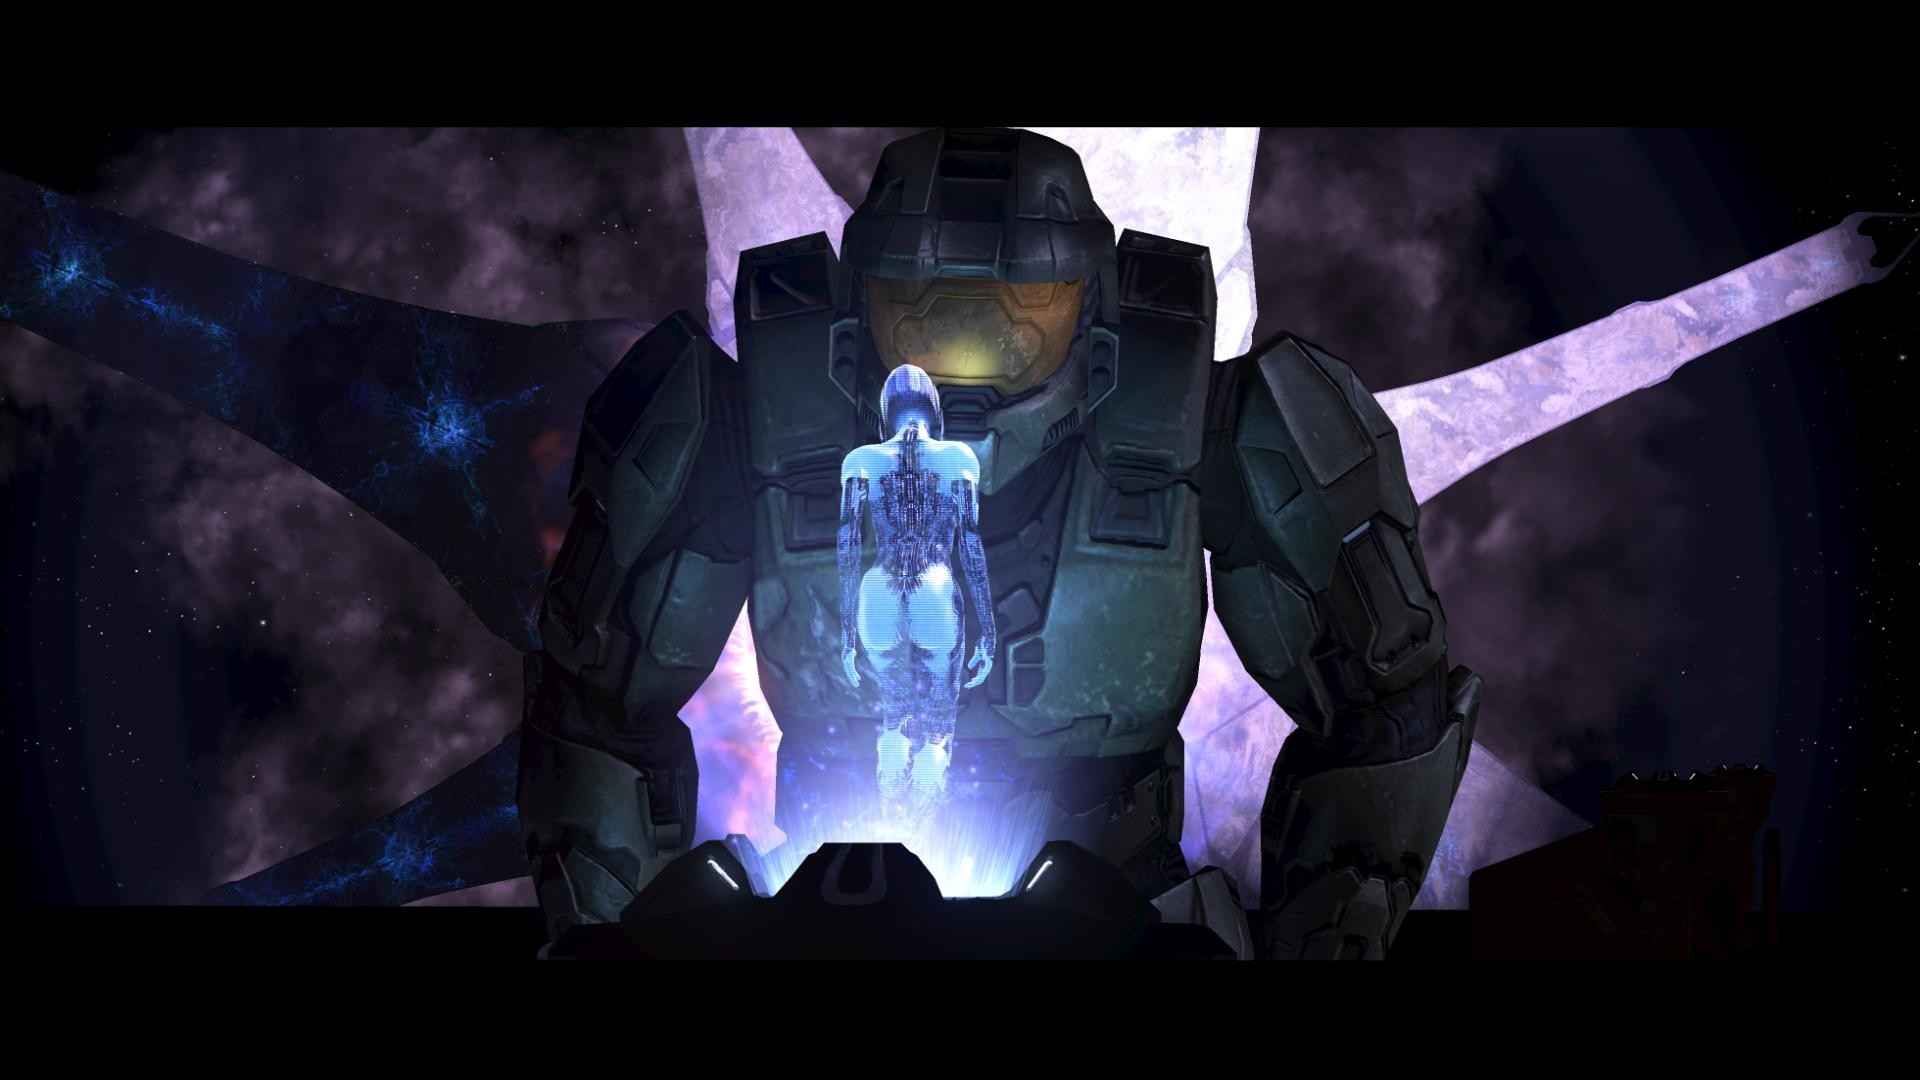 1920x1080 Video Game - Halo 3 Video Game Halo Wallpaper